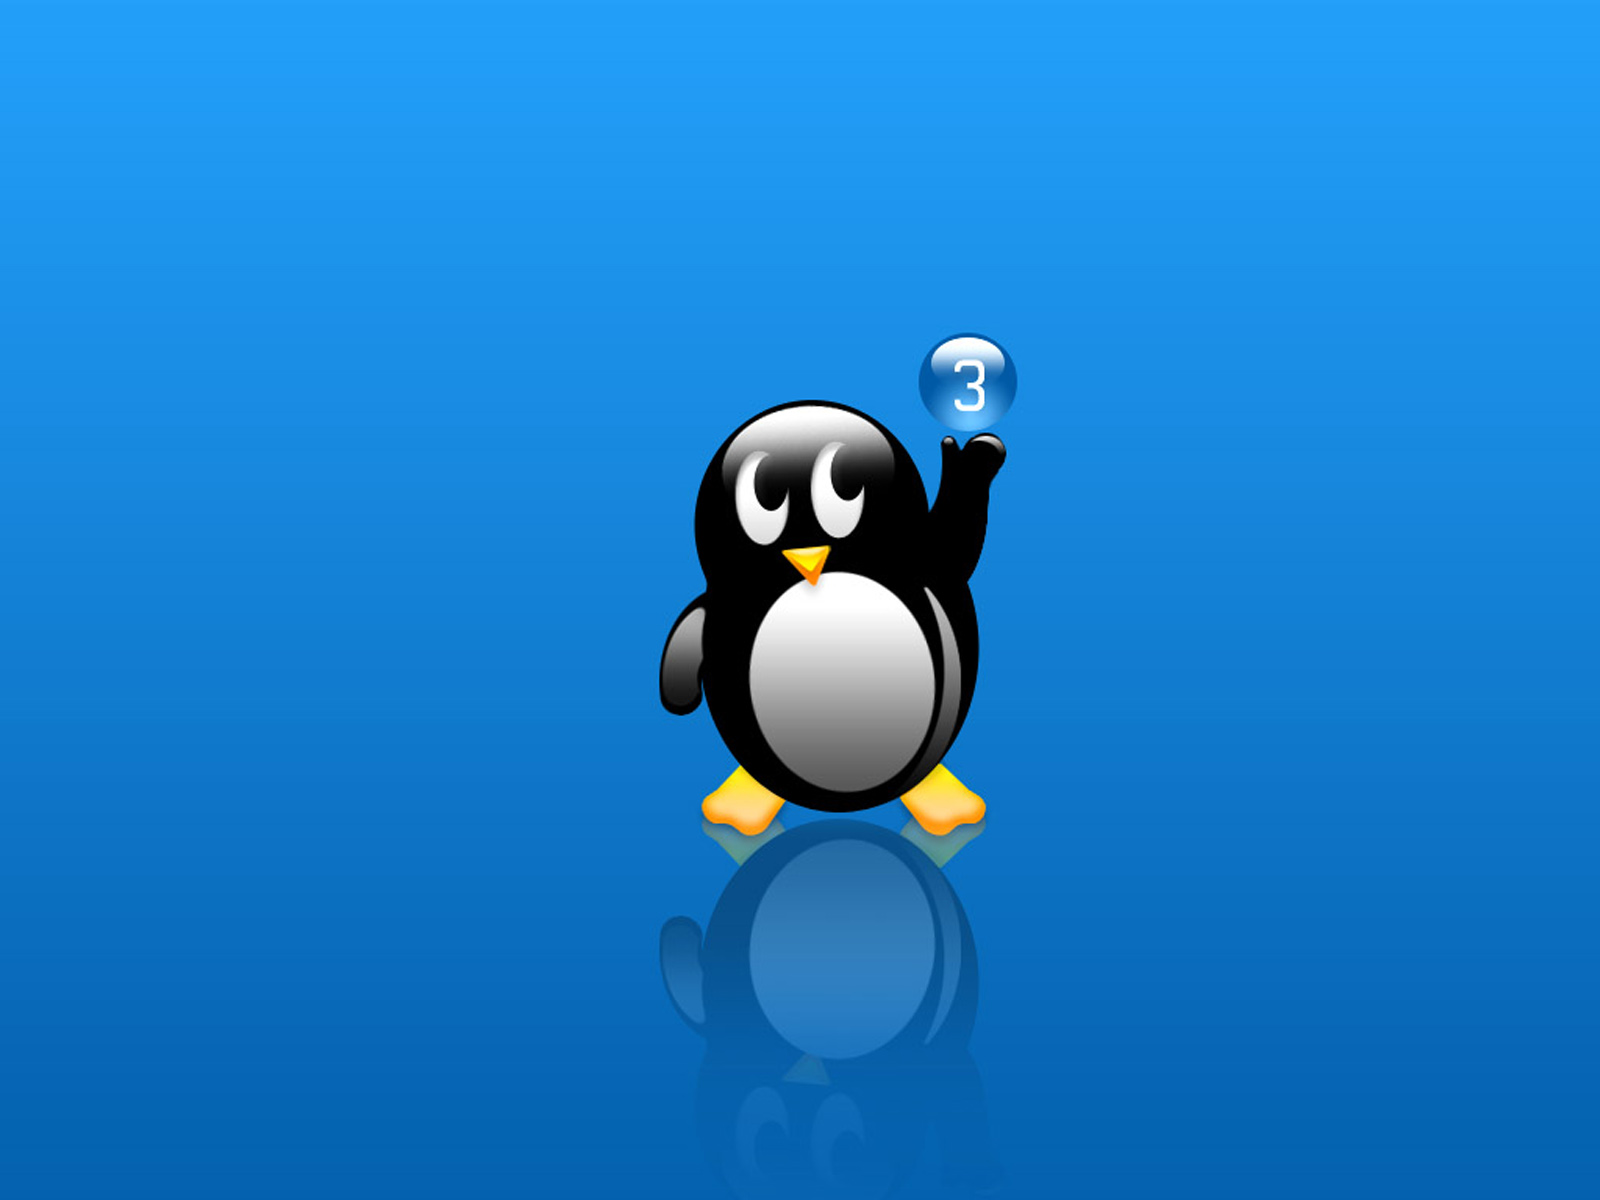 ... desktop background wallpapers free linux background themes linux high